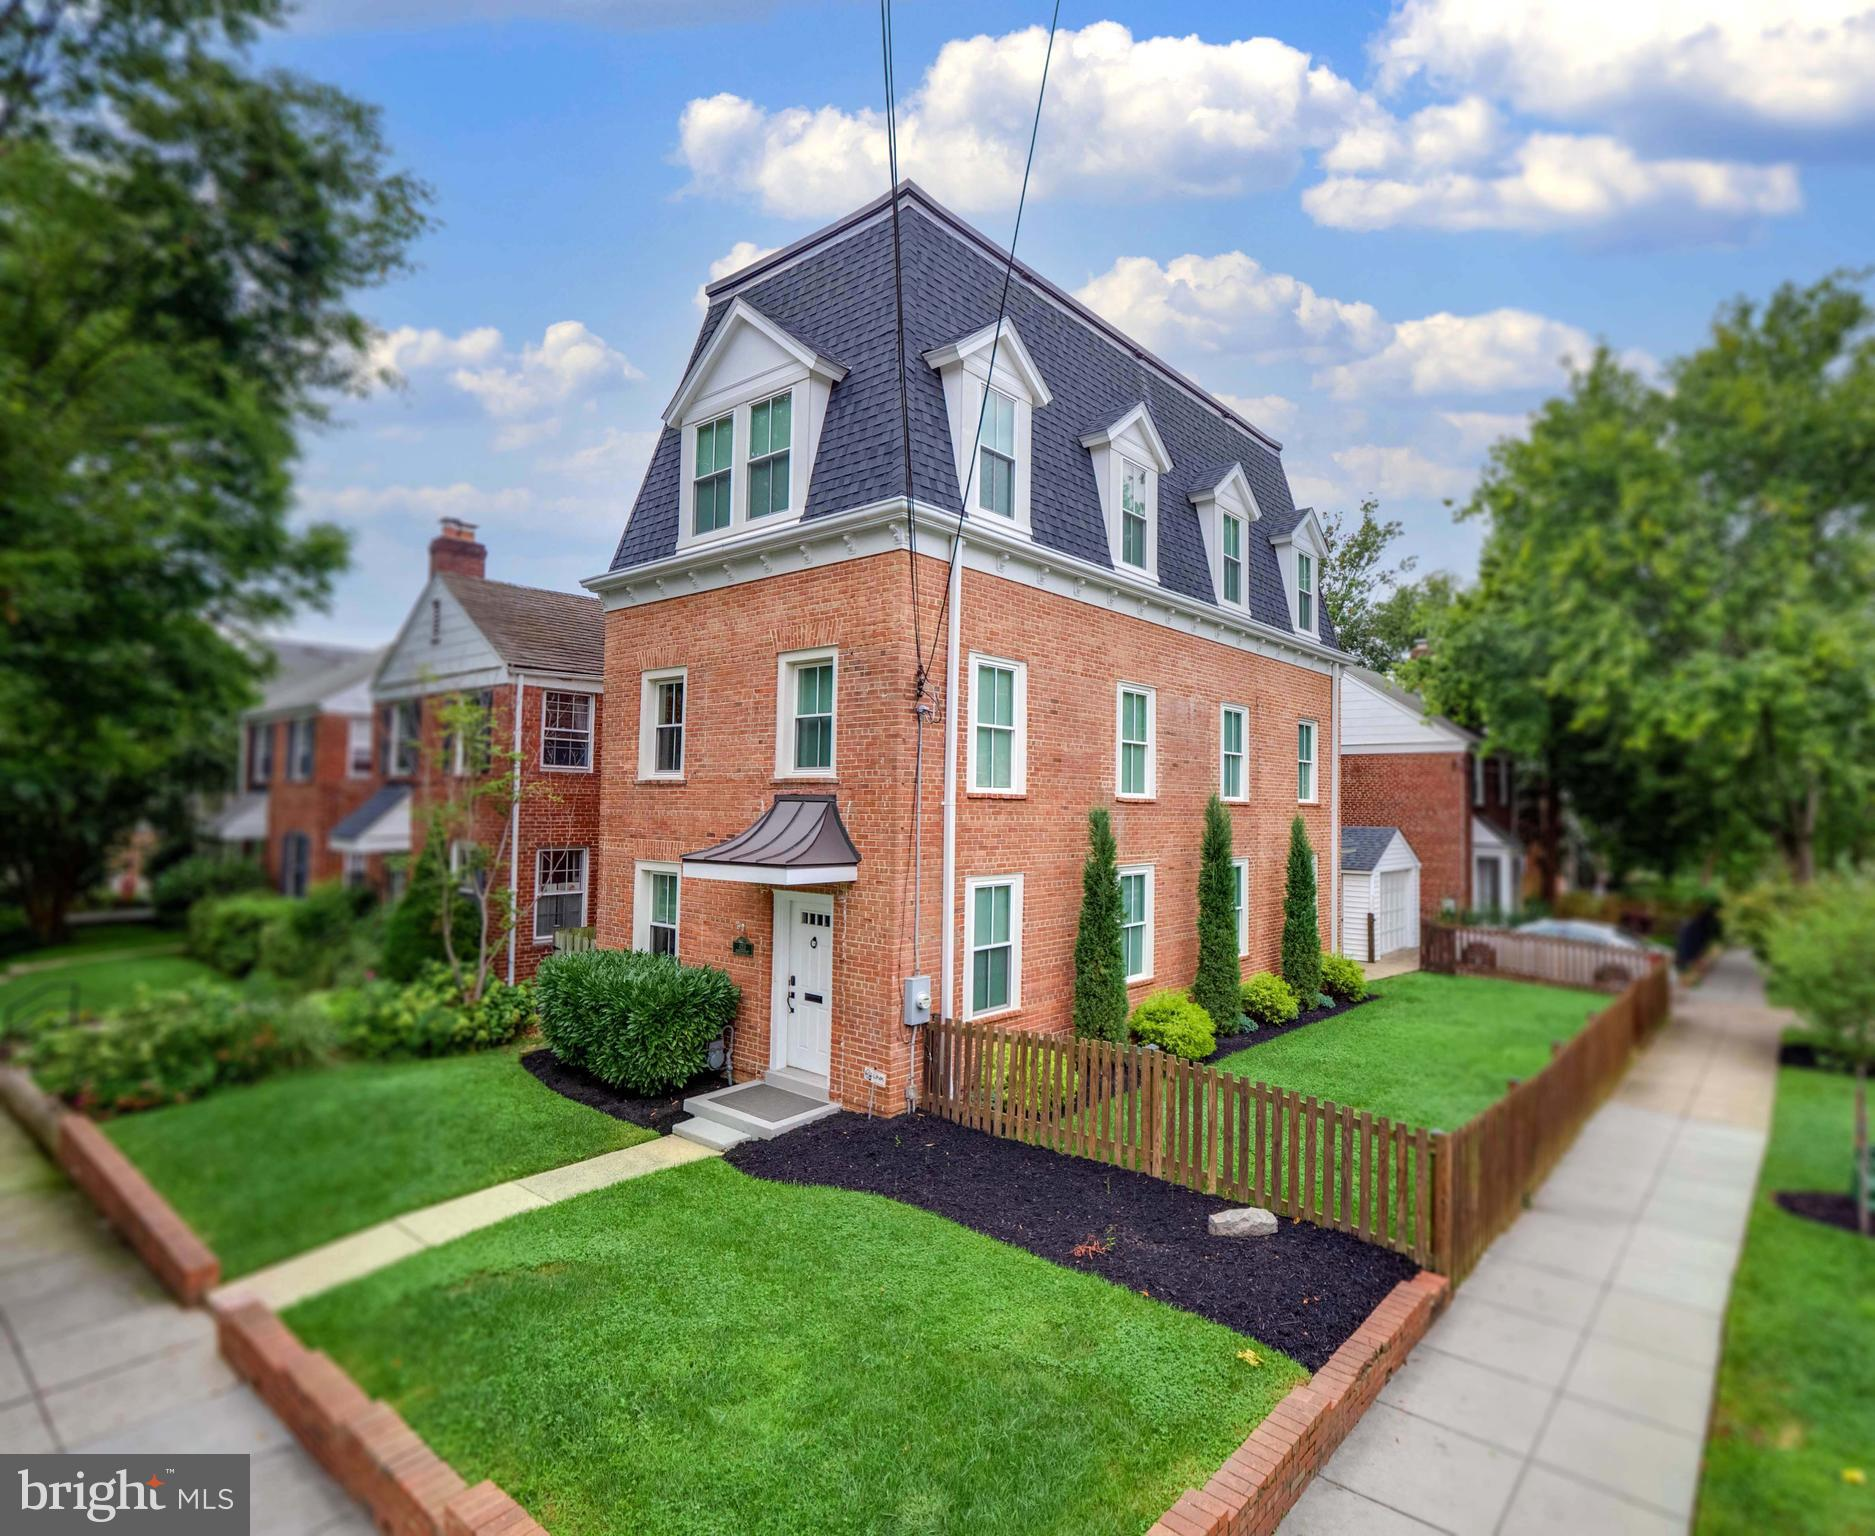 Exceptional 6BR/4.5BA Mansard-style brick home with 4 finished levels of comfortable living space, just 1 block to shops and Metro. Entirely renovated & expanded in 2016 to over 3,800sft with a new 2-story rear addition, new 3rd floor addition, and a new 570sft full-height attic above. Perched on a corner lot in the sought-after Janney/Deal/Wilson cluster, this smart home is move-in ready and designed for modern living.    FIRST FLOOR: Welcoming living room with wood-burning fireplace leads to dining area that seats 8 comfortably. Restaurant-style kitchen with Miele and Fisher & Paykel appliances, soapstone counters, 6-burner range, and two full sized sinks — one for prep and one for cleanup. Beyond the kitchen is a butler's pantry, dry bar, second refrigerator, powder room, and mudroom with rear entrance to spacious paved patio, detached garage, and exterior storage. Great flow from inside to out for grilling and entertaining.    SECOND FLOOR: 3 bedrooms, 2 fully renovated baths, ample closets, and laundry with full-size washer dryer.    THIRD FLOOR: Spacious owners' suite/primary bedroom has light-filled tree top views, generous walk-in closet/dressing room, en-suite spa bath with custom Porcelanosa shower, Hansgrohe fixtures in a dual vanity, 6ft soaking tub, supplied by a dedicated tankless hot water heater. Opposite the primary bedroom is a flexible 5th bedroom/nursery/office.    FOURTH FLOOR ATTIC: Full-height, floored attic with 570 square feet of storage, 2nd HVAC system, and 2nd hot water heater (tankless).    LOWER LEVEL: Rec room has built-in home theater with 106-inch movie screen and 7.1 Yamaha/Roku surround sound system, ready for your favorite streaming movies and shows, contained in a dedicated equipment rack. Beyond the family room is a separate 6th bedroom and full bath with private exterior entrance, perfect for an office, nanny/Au Pair, in-laws, or guest suite.    BACKYARD: Patio enclosed by privacy fence and garage, permeable pavers stay dry for